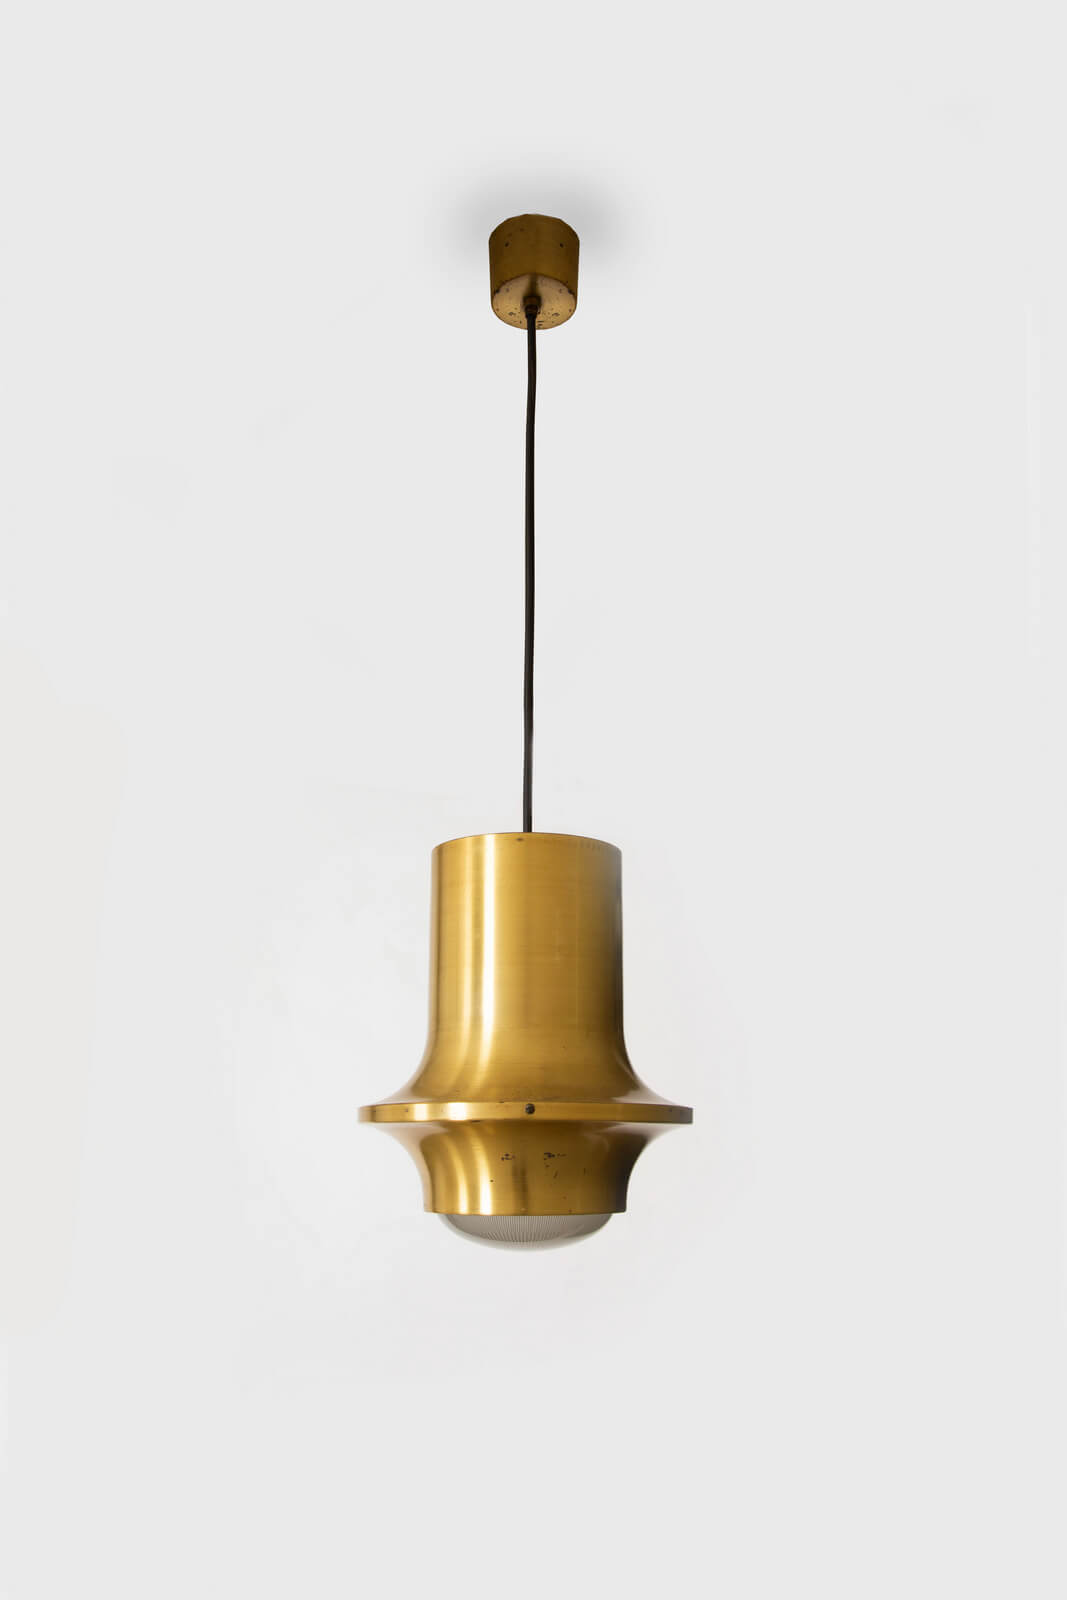 Ceiling lamp by Stilnovo for sale